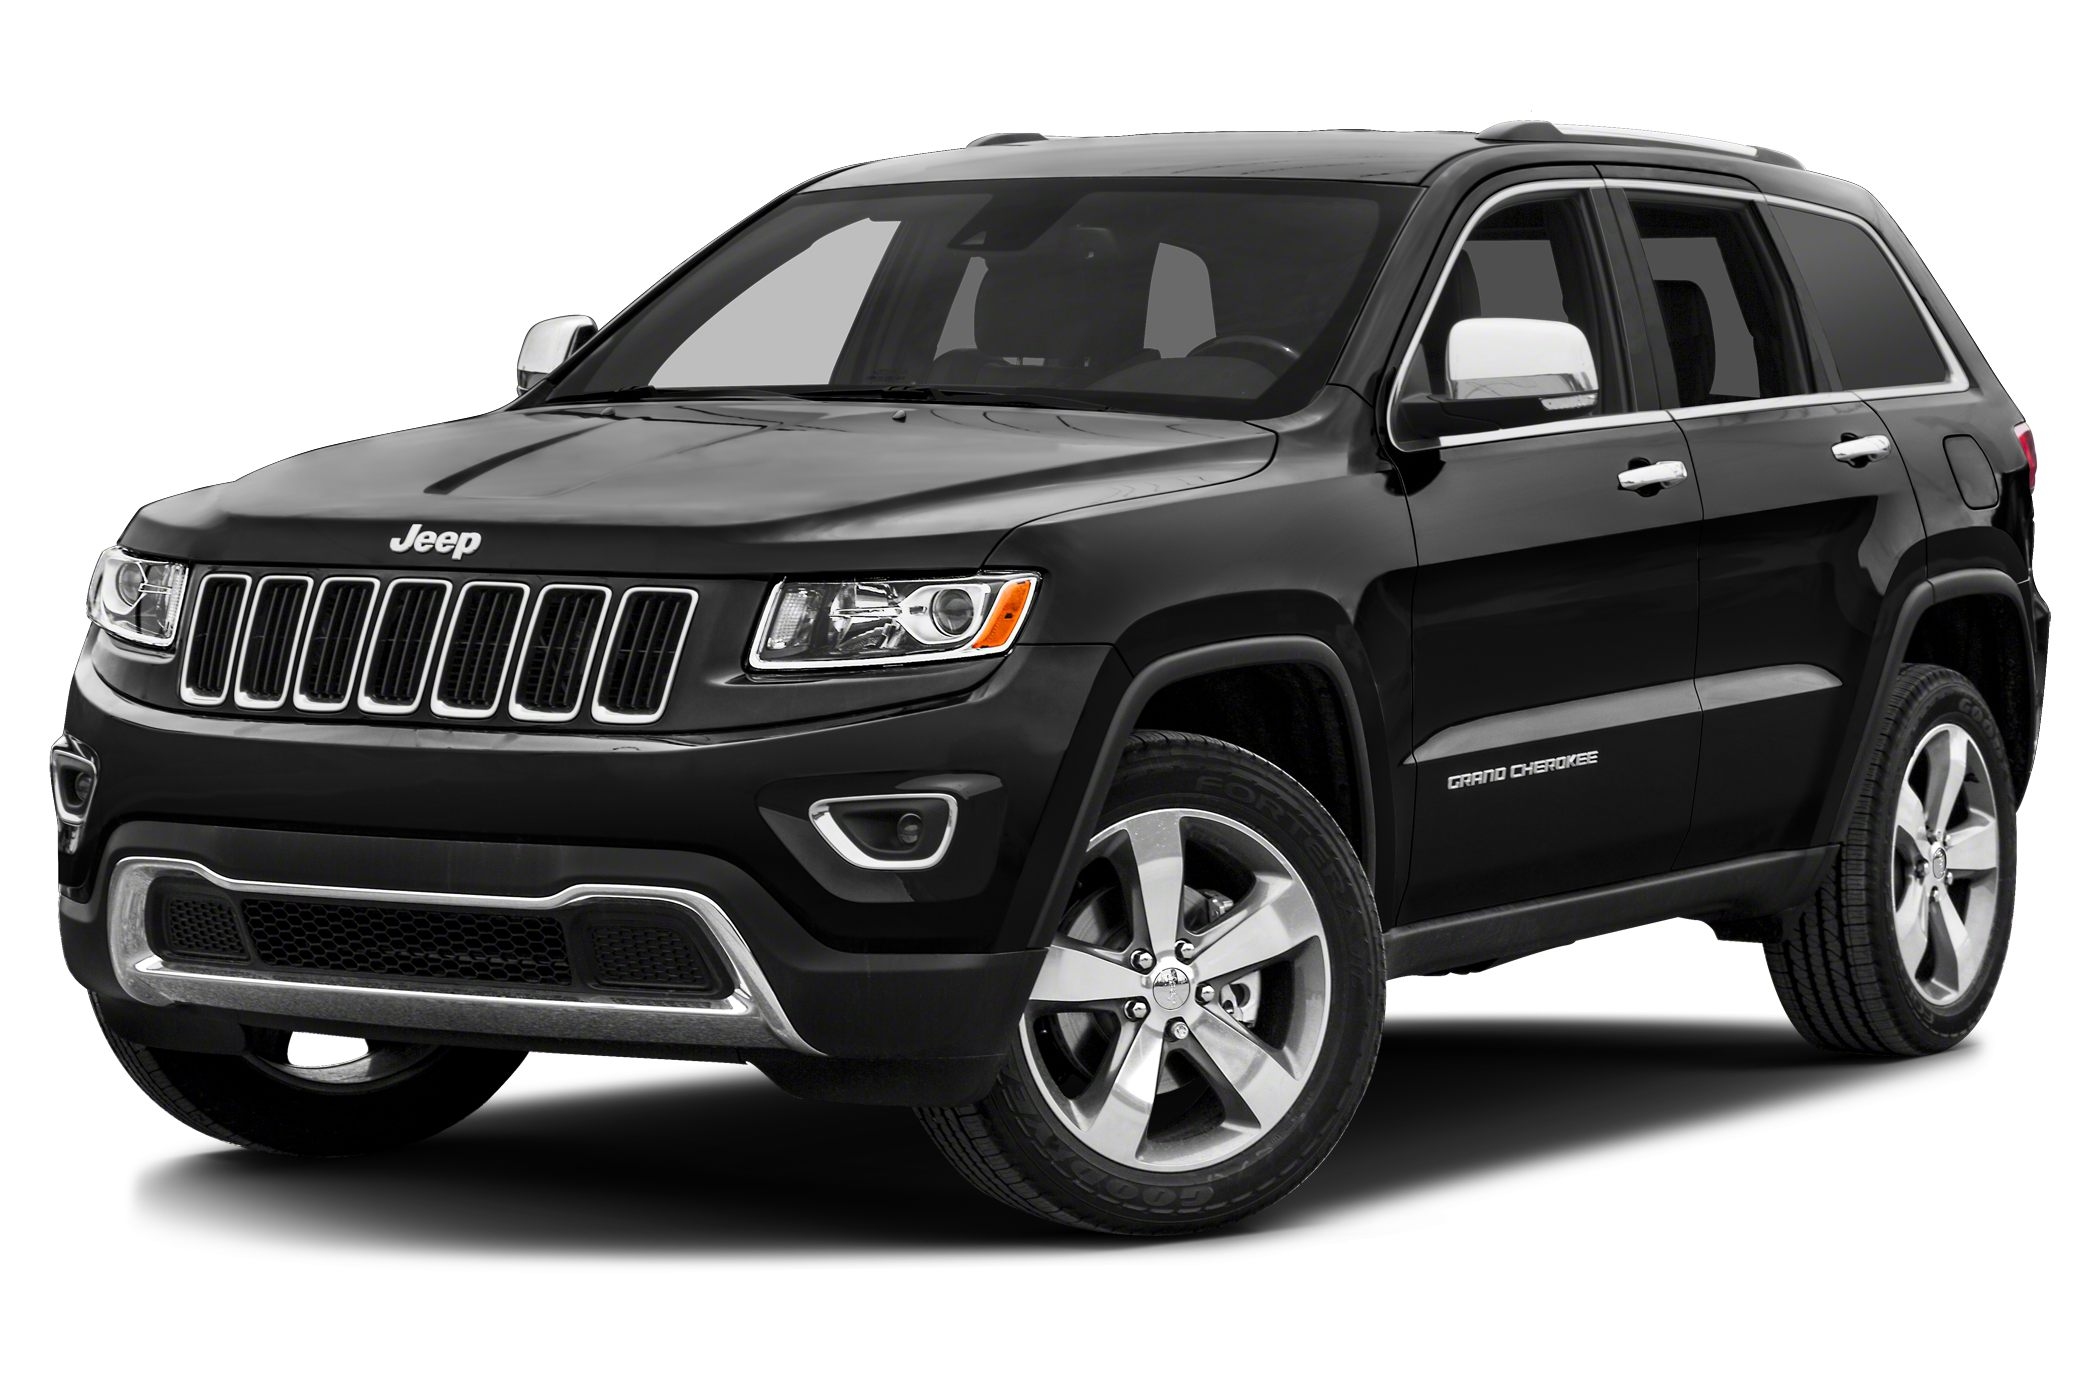 2015 Jeep Grand Cherokee Limited SUV for sale in Alamogordo for $43,735 with 1 miles.